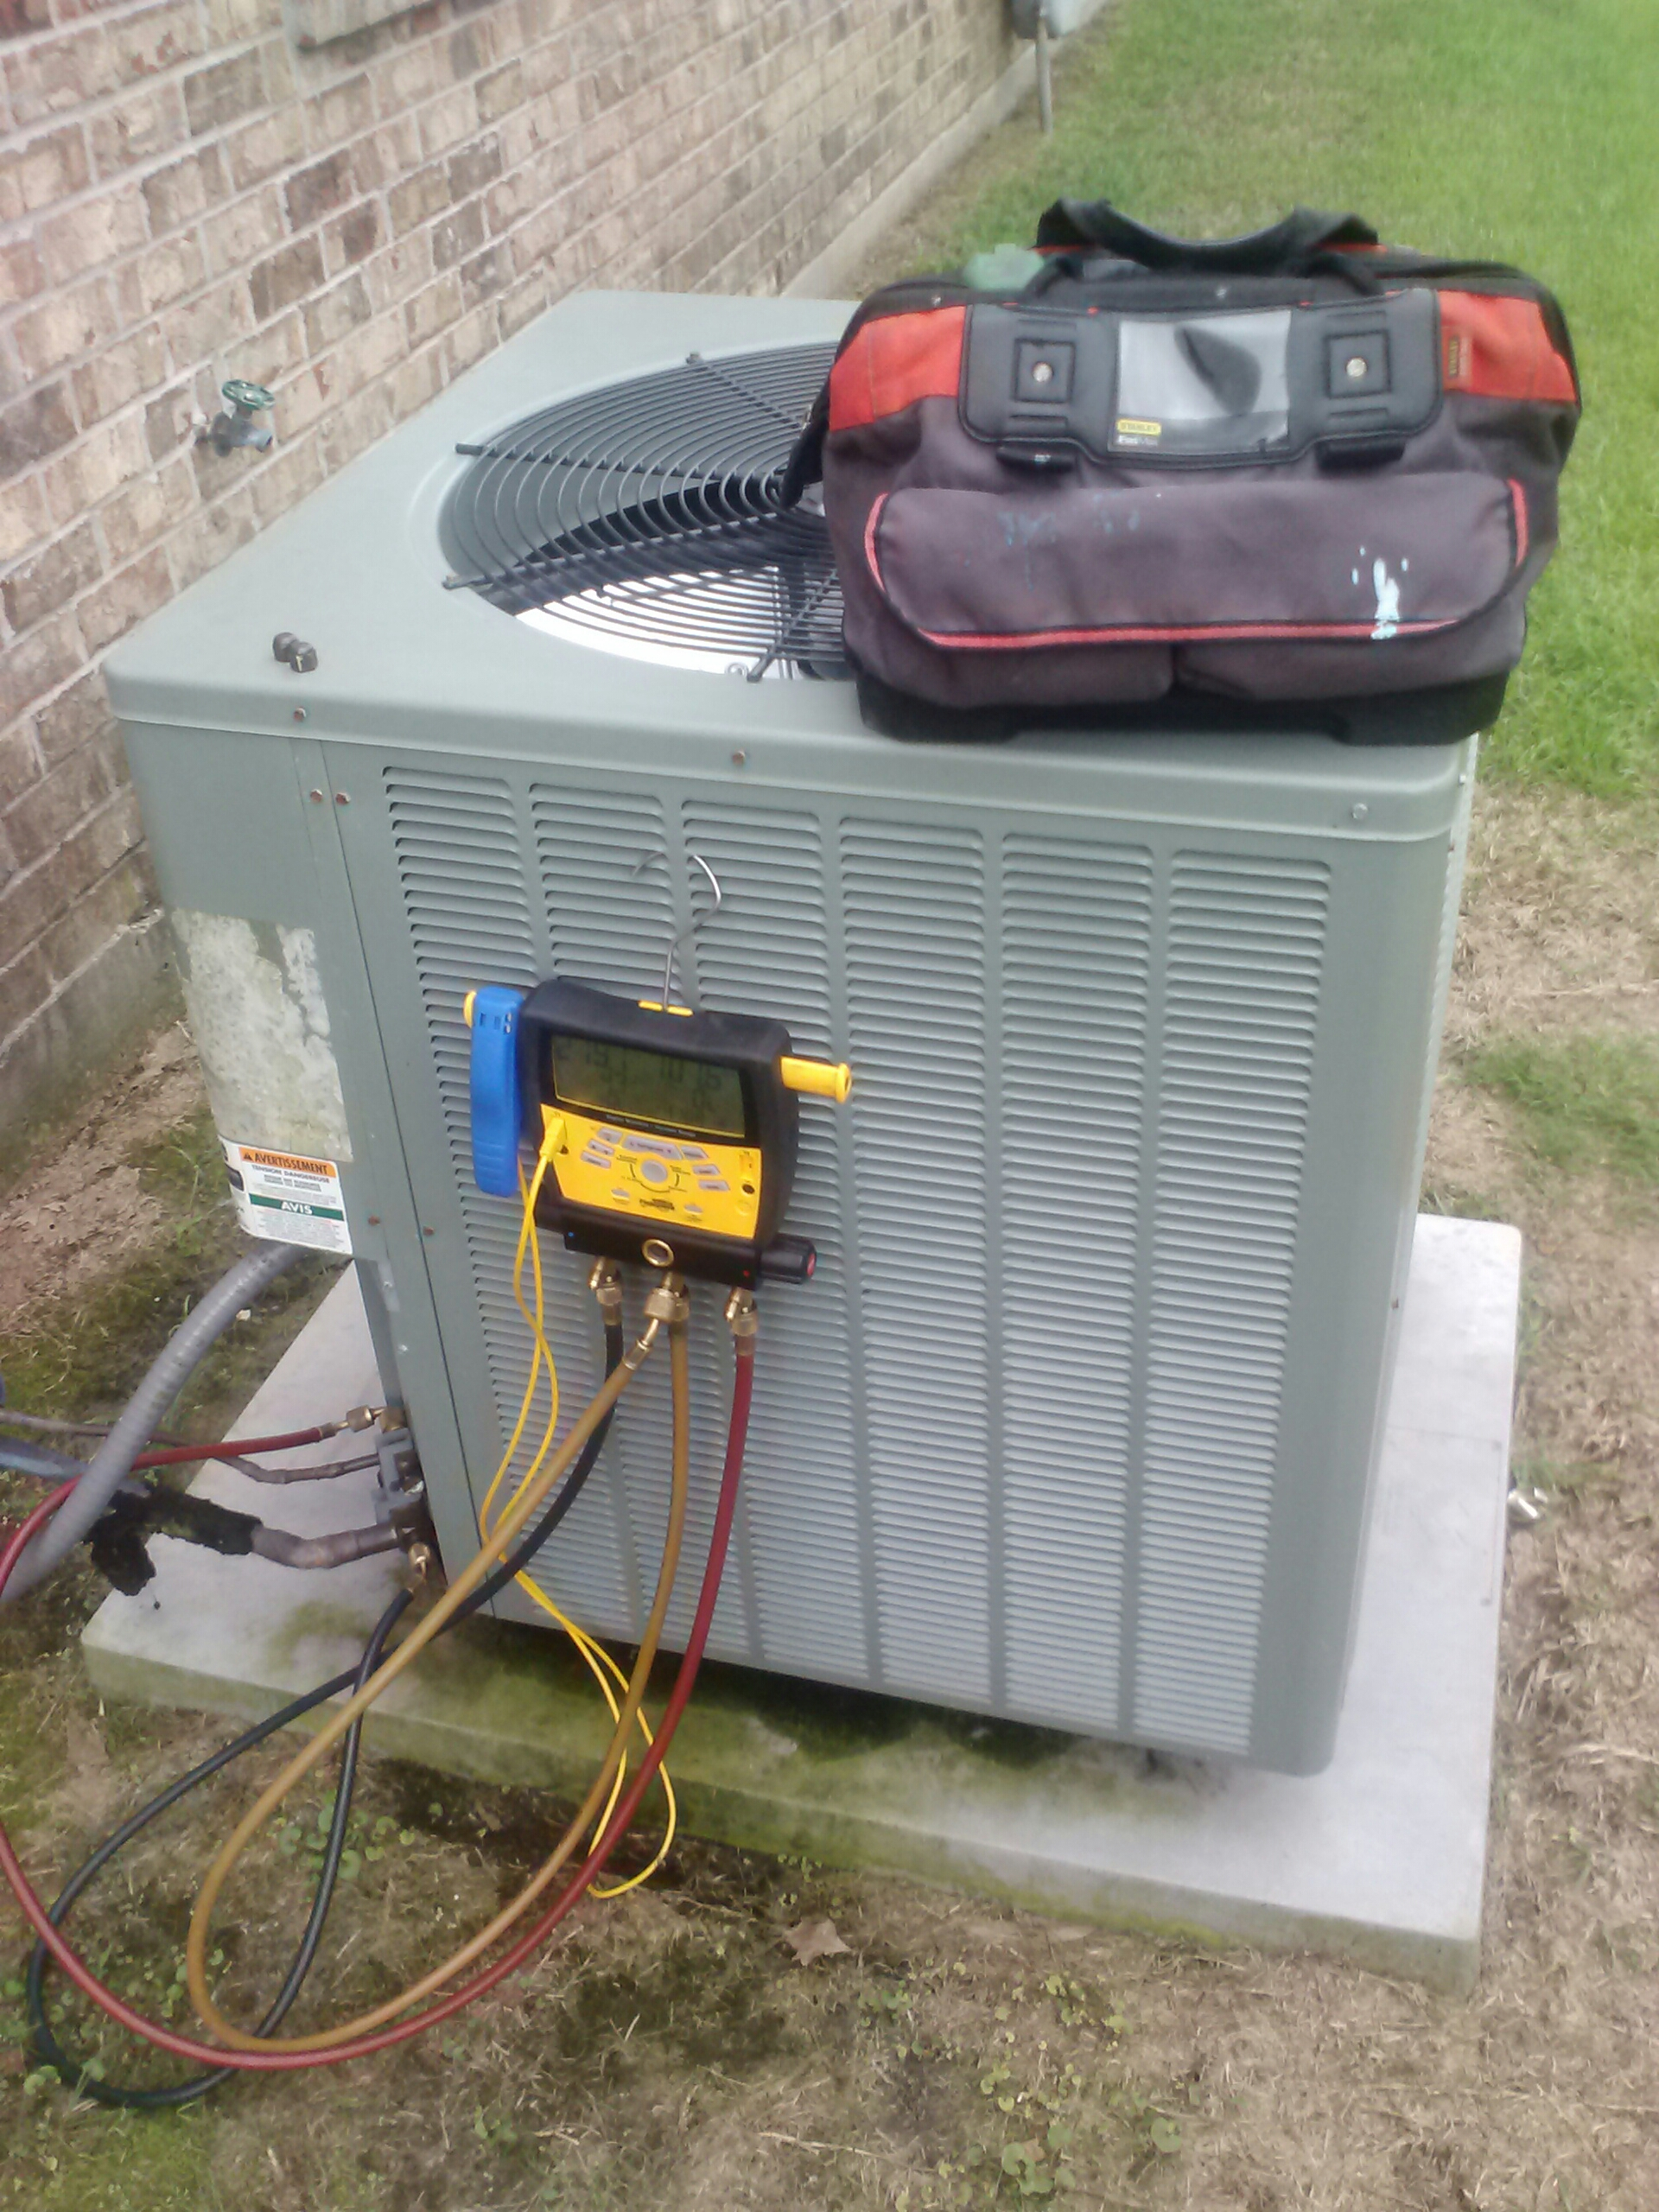 New Roads, LA - Serviced unit for not cooling properly, Rheem AC unit low on charge, added freon to get unit cooling properly.